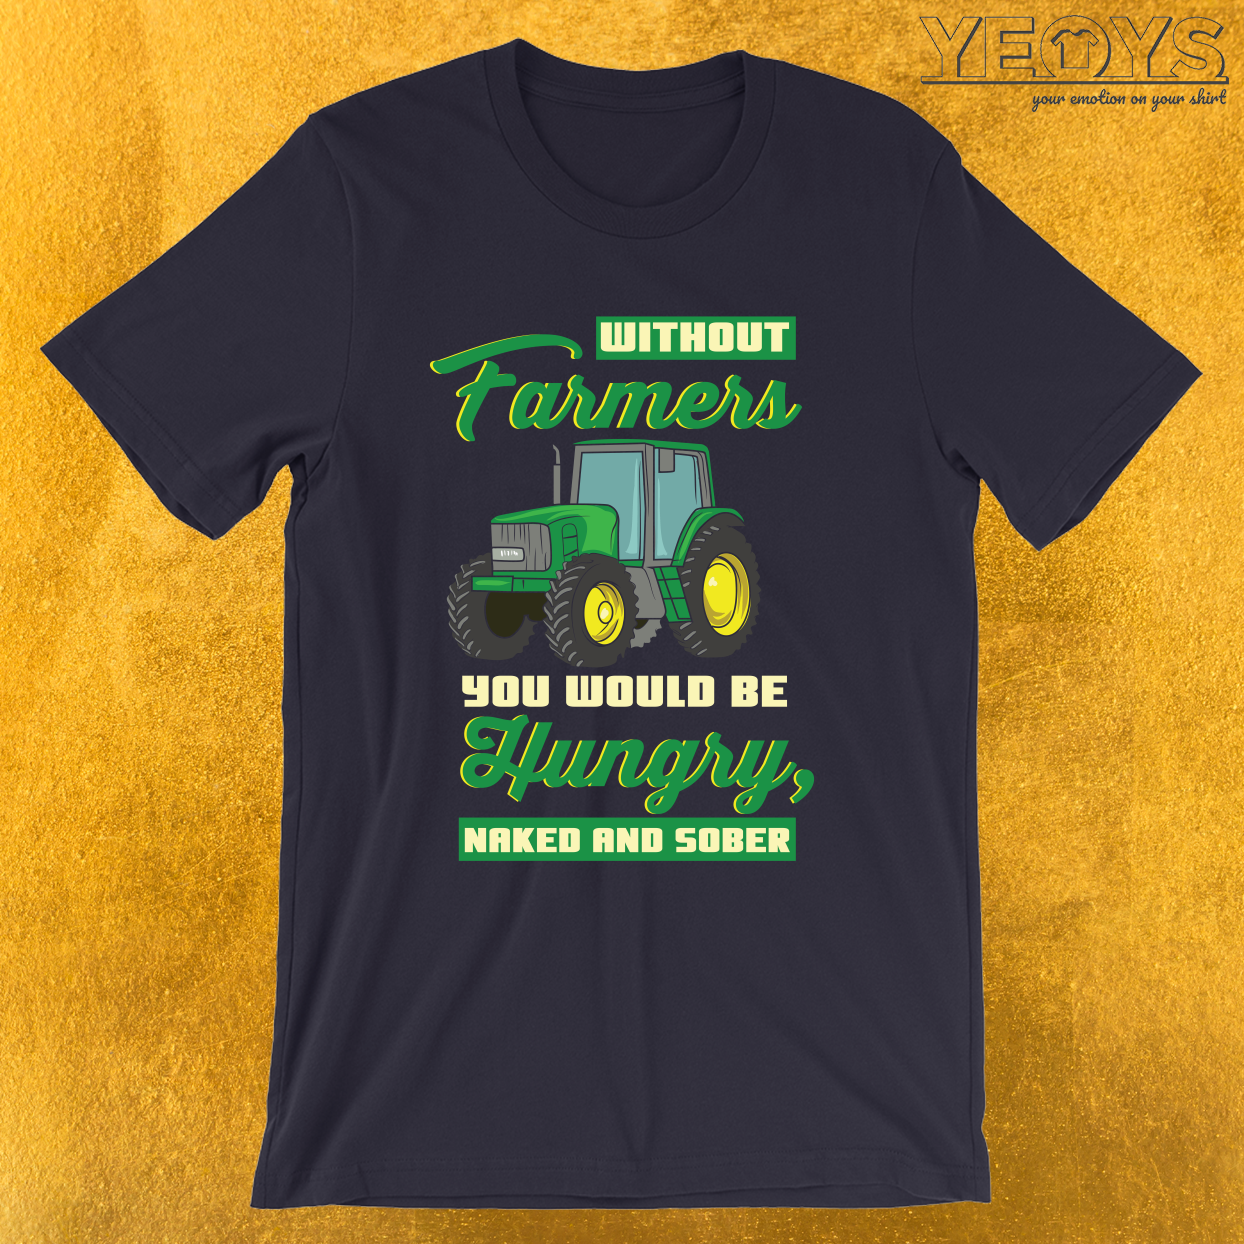 Without Farmers Hungry Naked And Sober – Farmer Quotes Tee